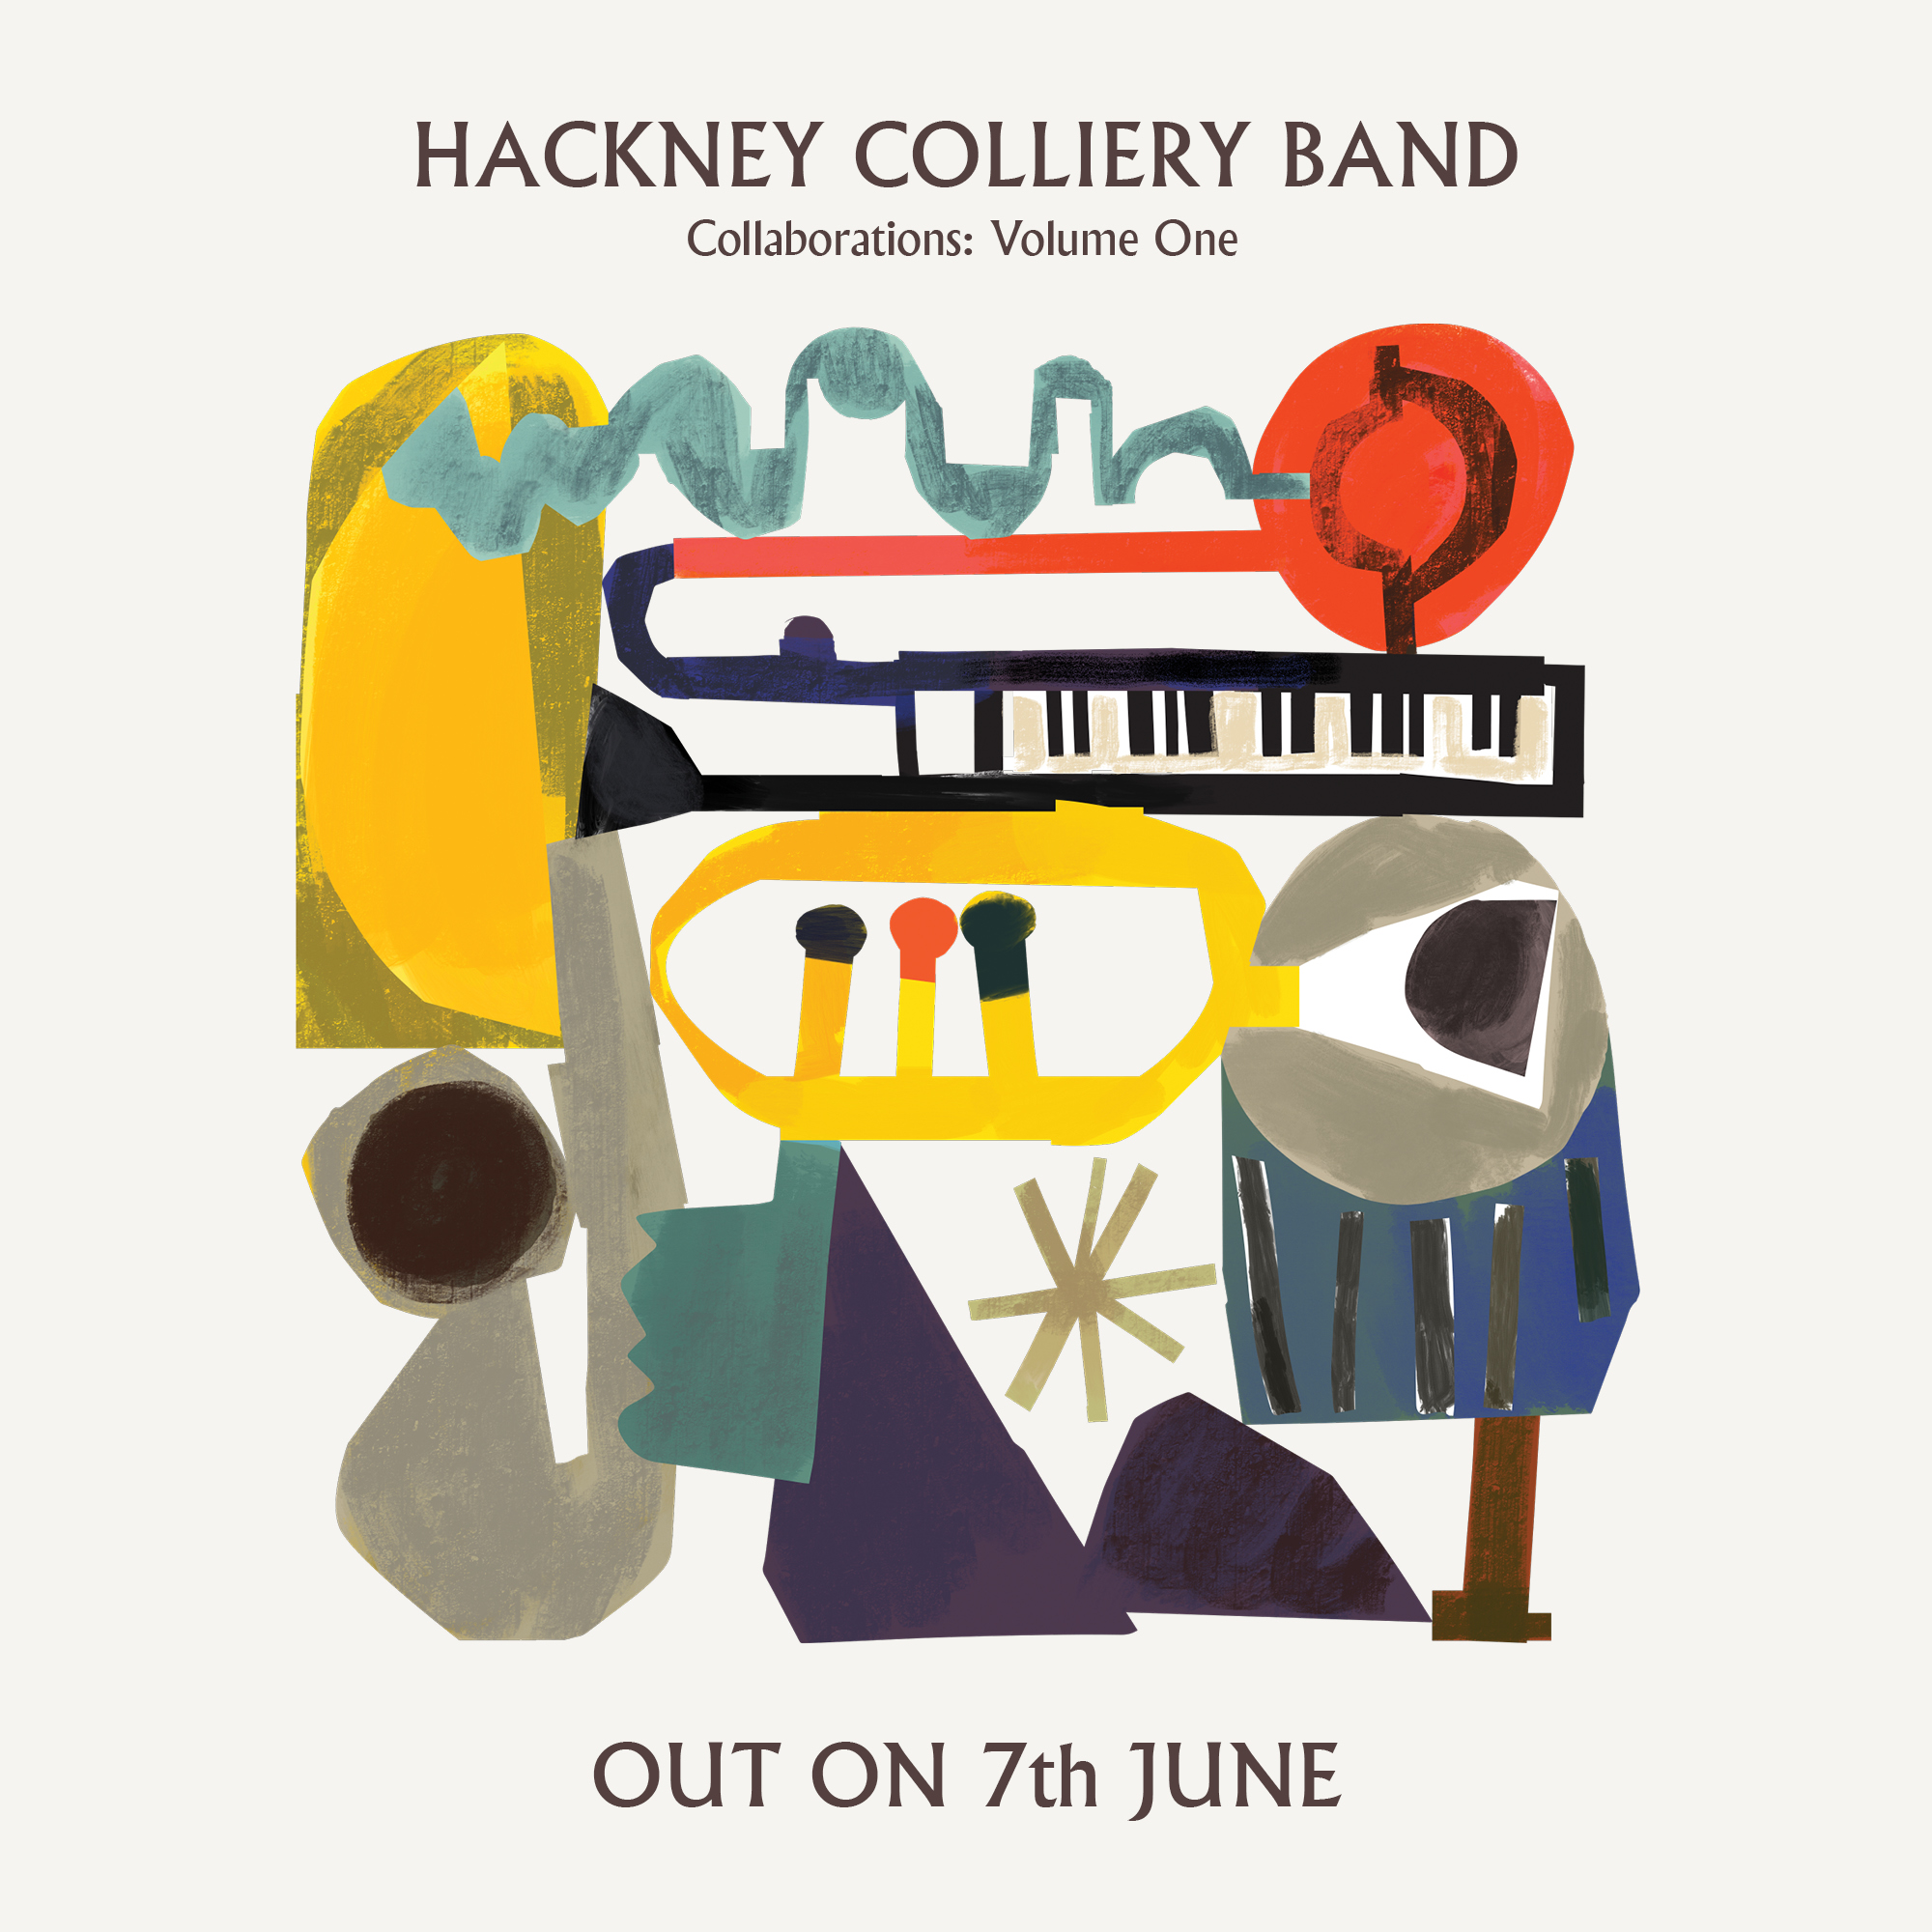 Picture of Hackney Colliery Band Collaborations Volume 1 album cover